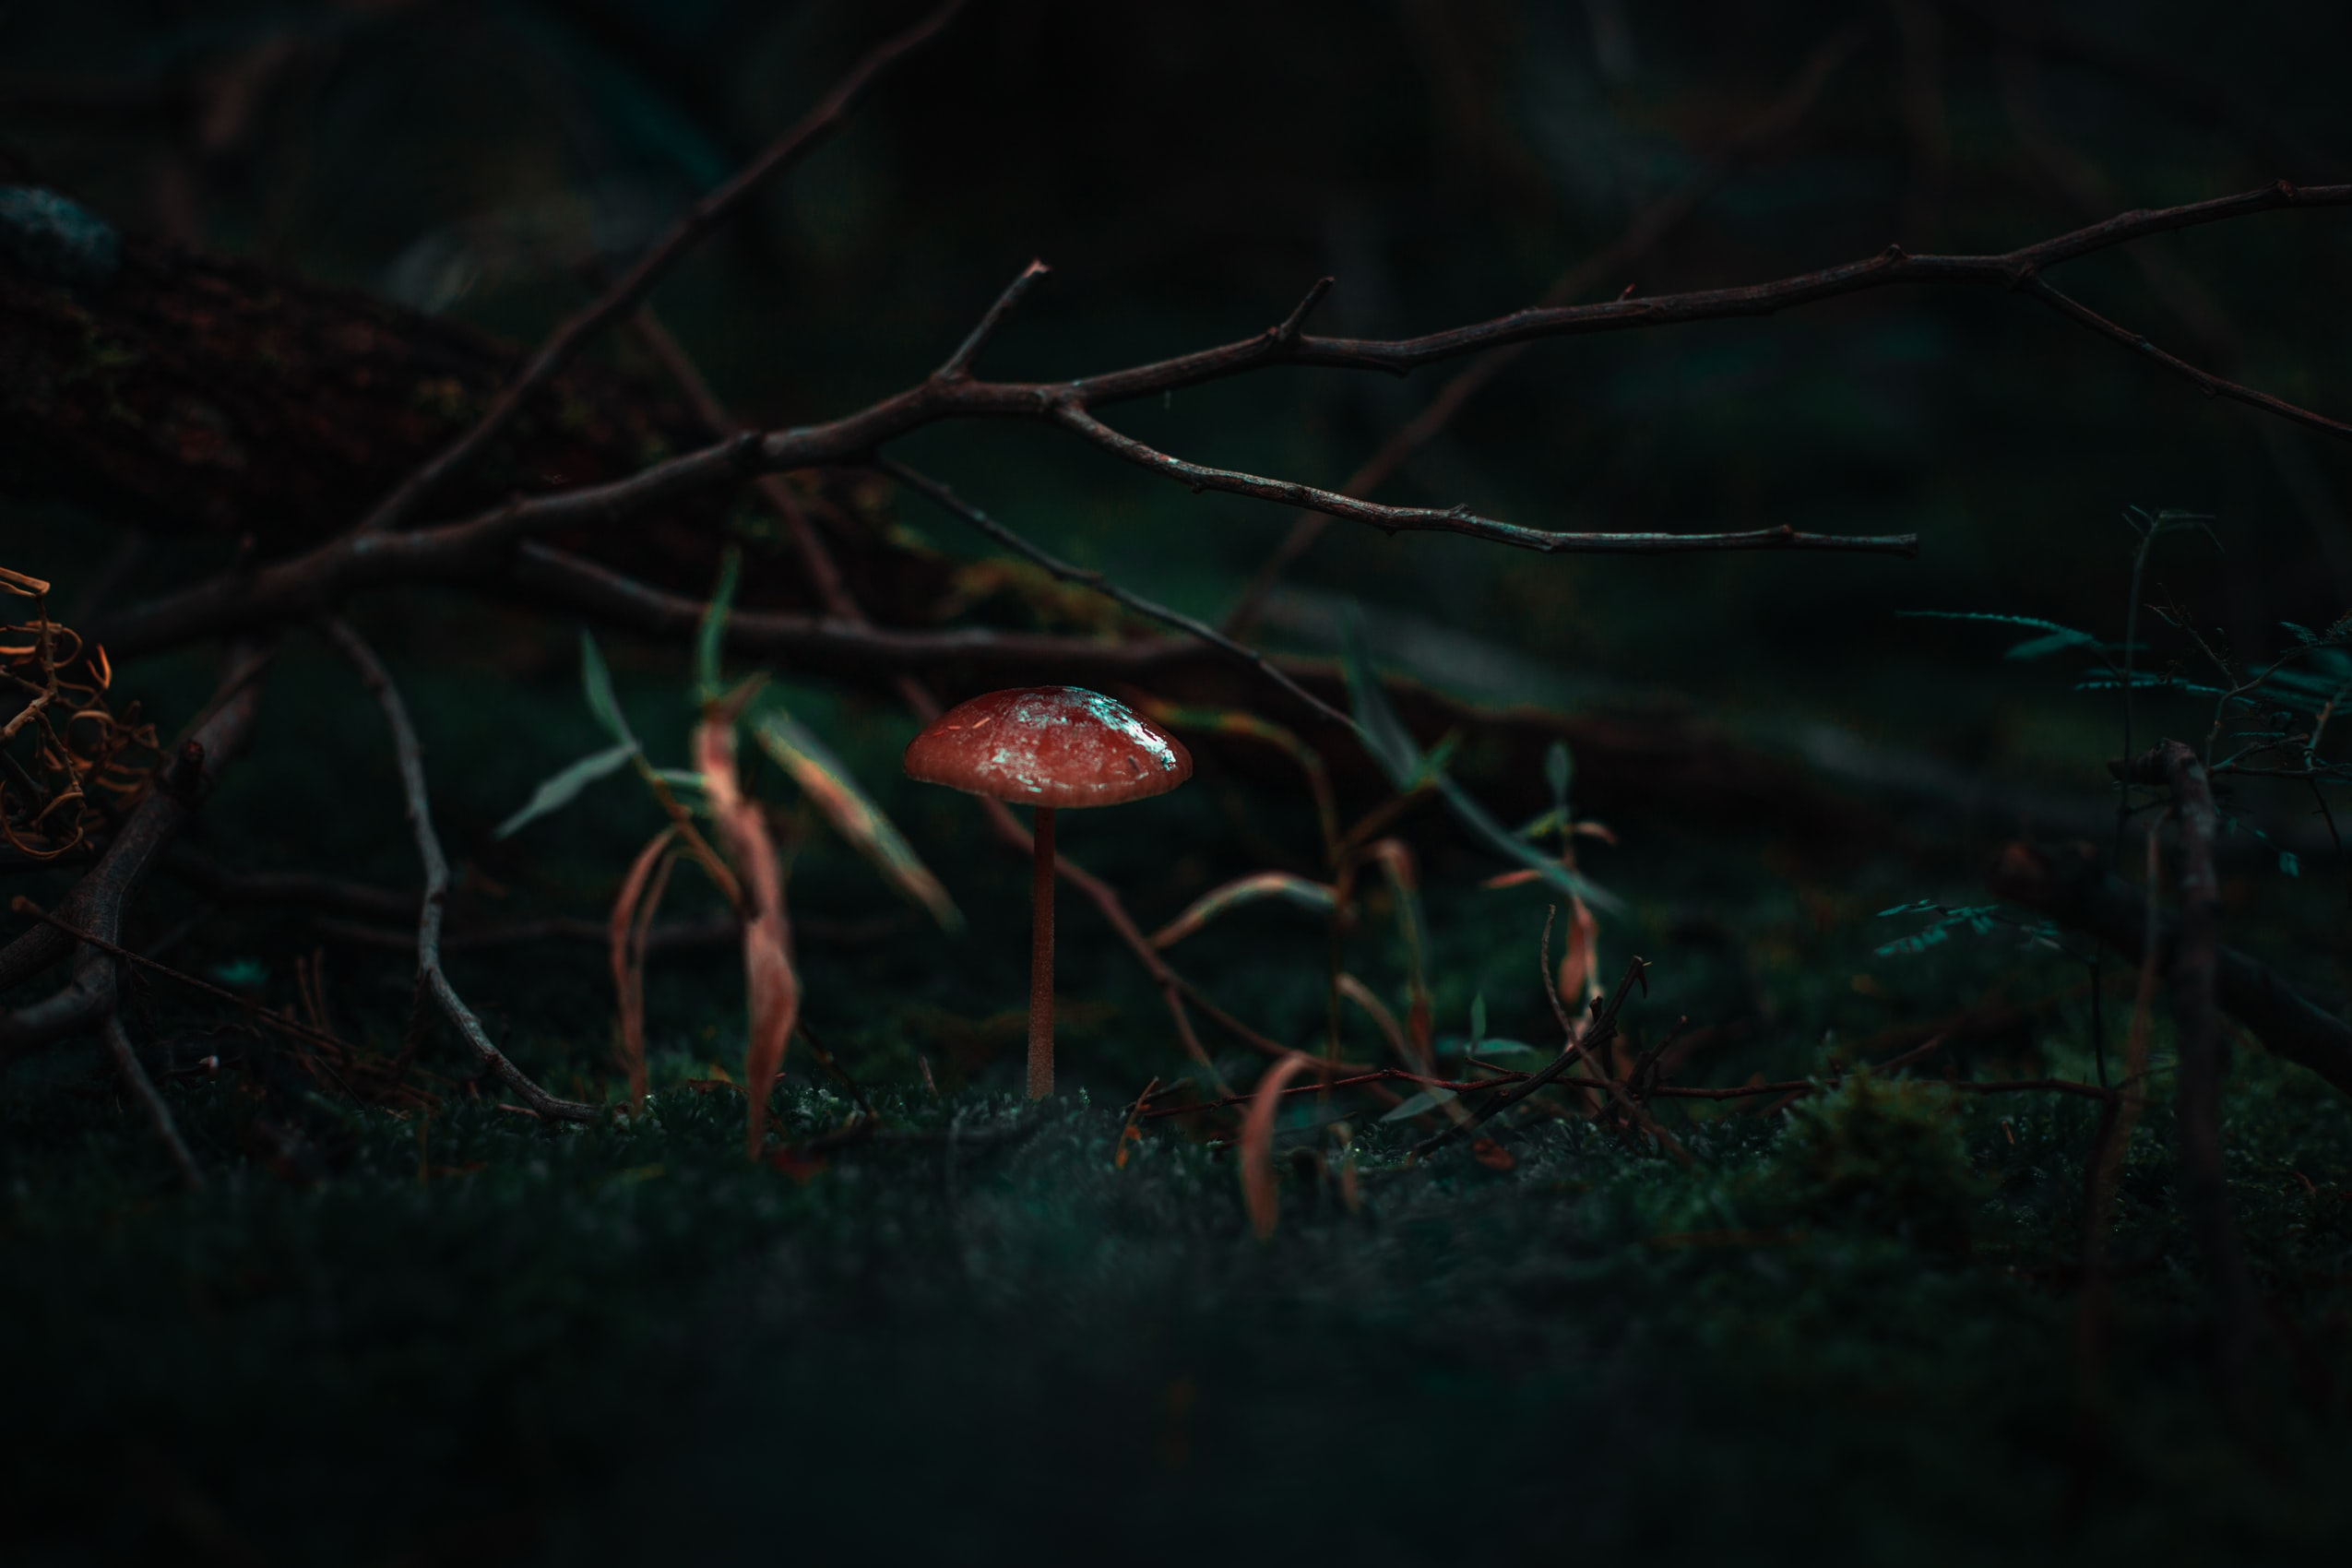 Psychedelic Treatment with Psilocybin Relieves Major Depression, Study Shows